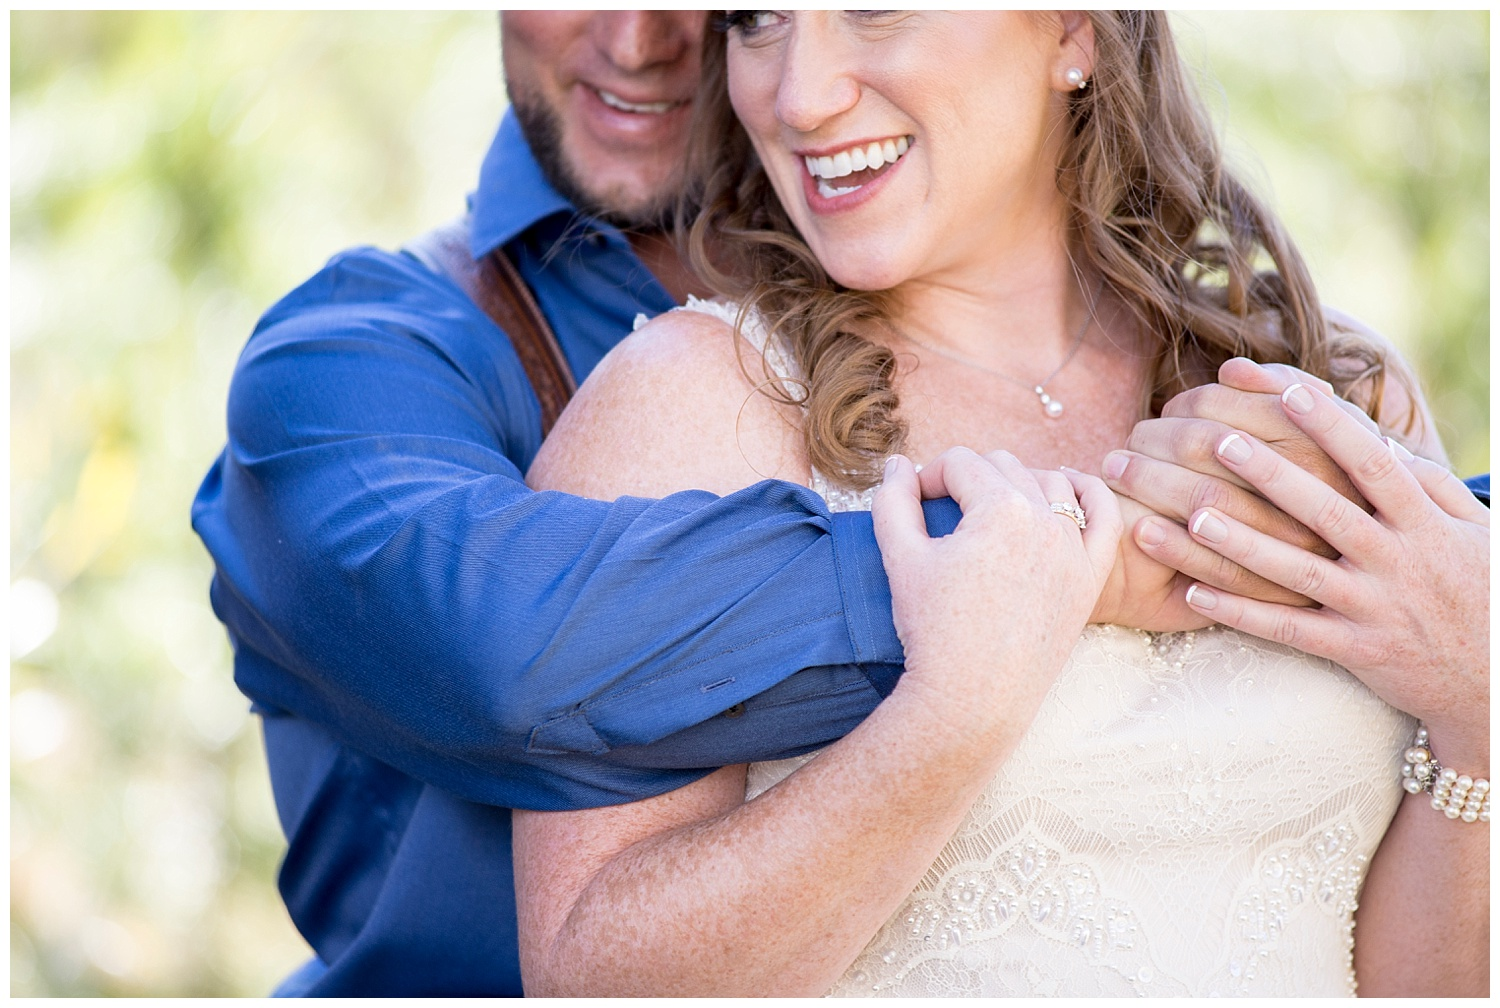 Man Hugging Woman From Behind | Carolyn and Shawn's Wild Horse Inn Wedding at Devil's Thumb Ranch | Fraser Colorado Photography | Farm Wedding Photographer | Apollo Fields Wedding Photojournalism